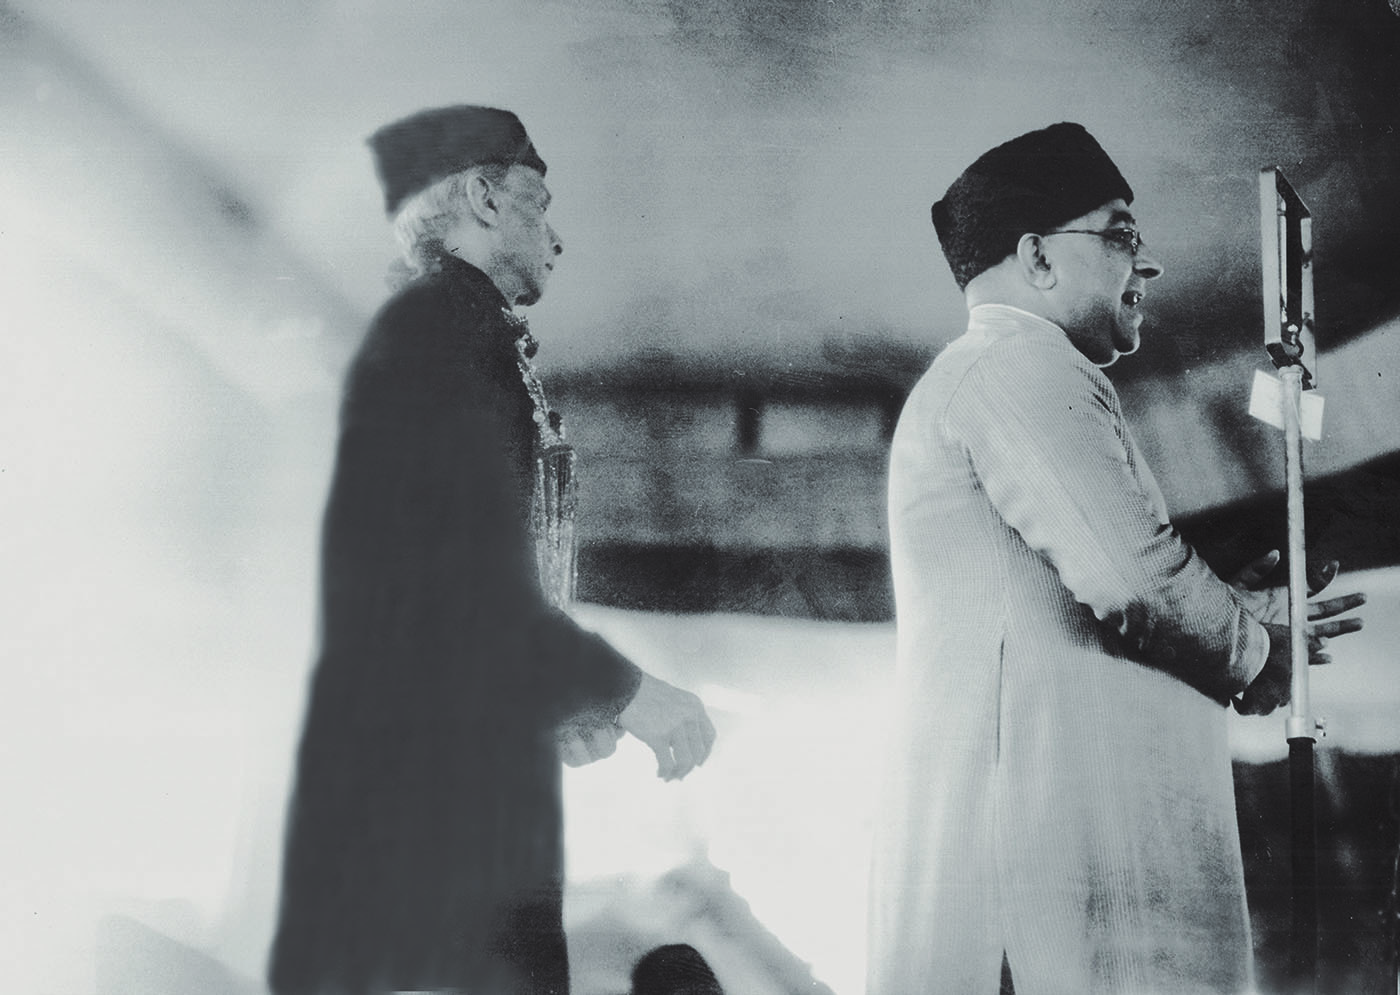 Nawabzada Liaquat Ali Khan addresses members of the All-India Muslim League at a meeting in April 1943, in Delhi, as Quaid-i-Azam Mohammad Ali Jinnah looks on. —​ Dawn/White Star Archives